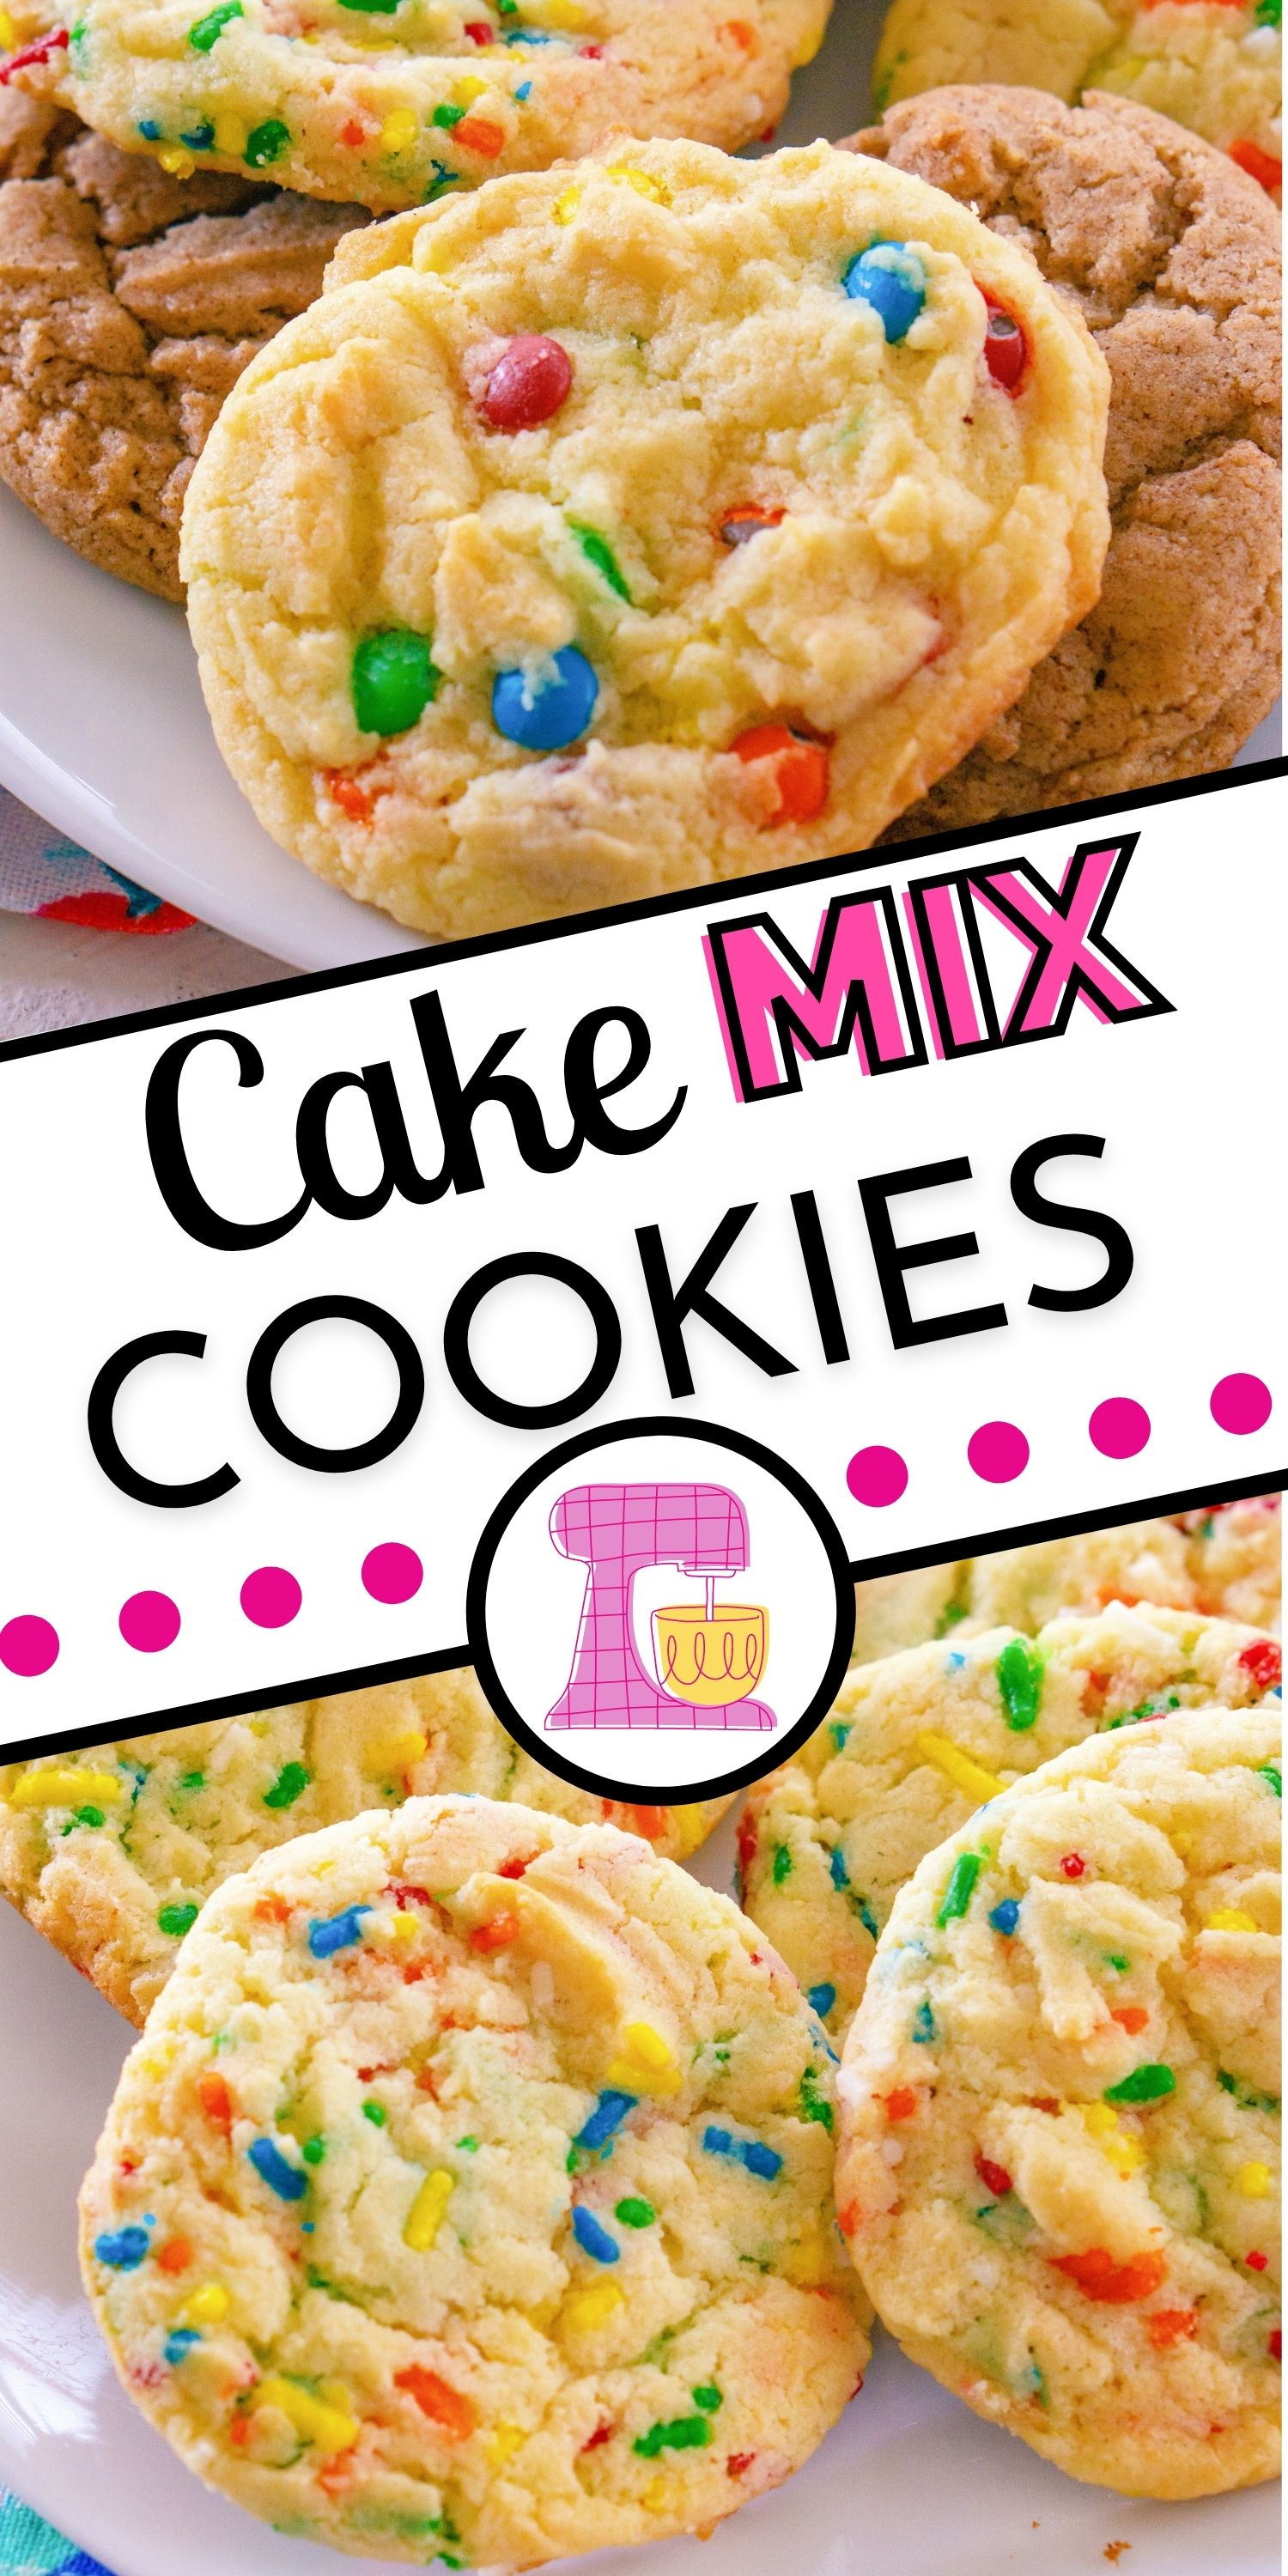 All you need are just four ingredients to make these Cake Mix Cookies. My recipe includes instructions for three different flavor varieties: M&Ms, sprinkles, and cinnamon. via @foodfolksandfun